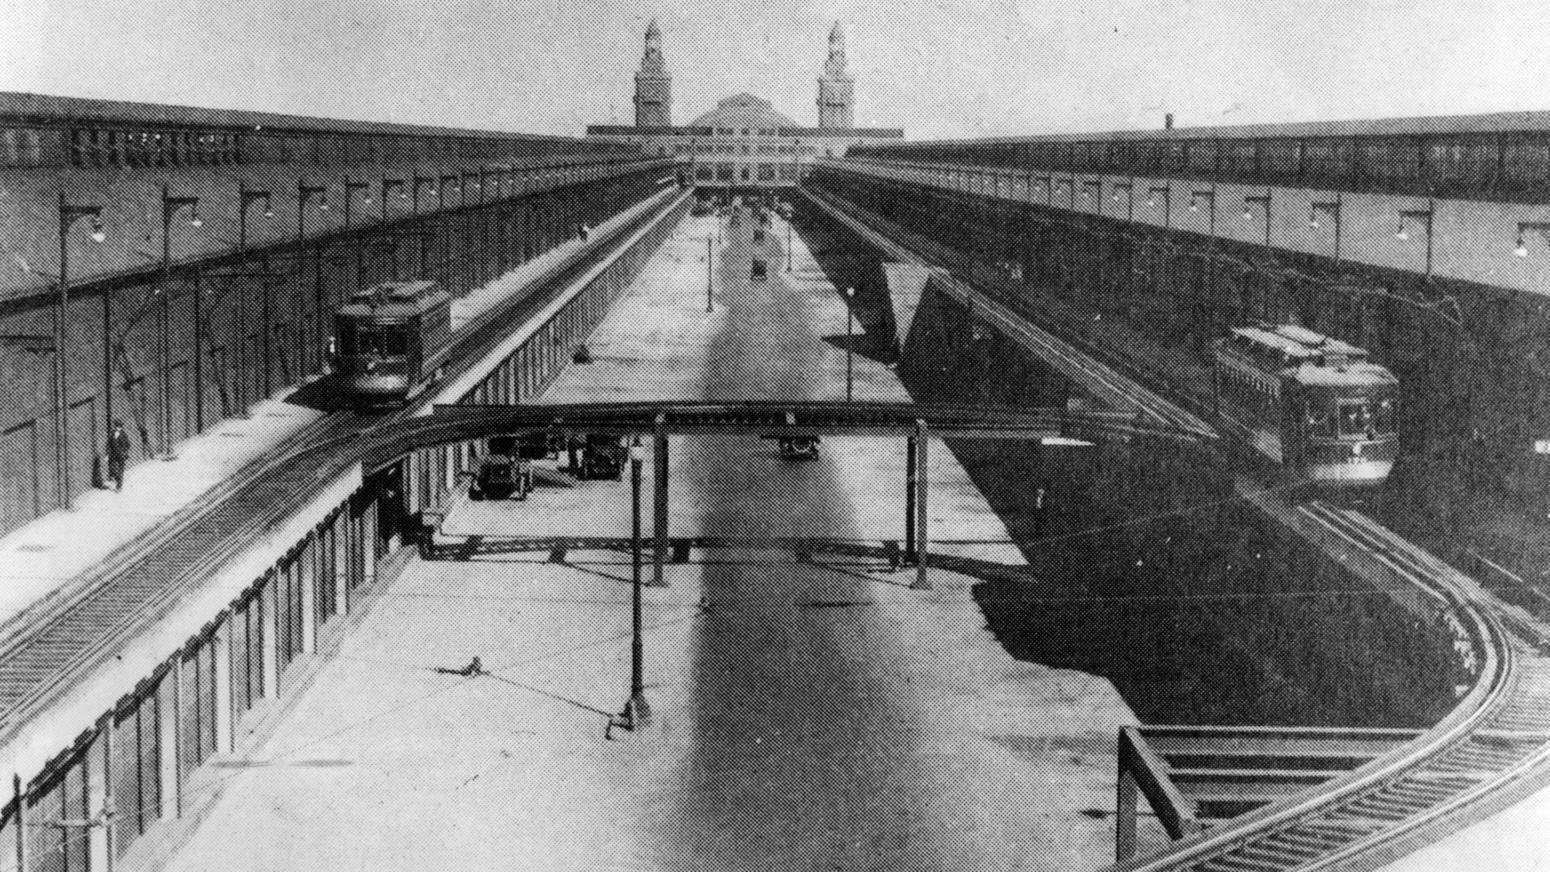 Looking east down the center of the Pier in 1921 reveals the streetcars that traveled its length along the upper level. Chicago Tribune photo.